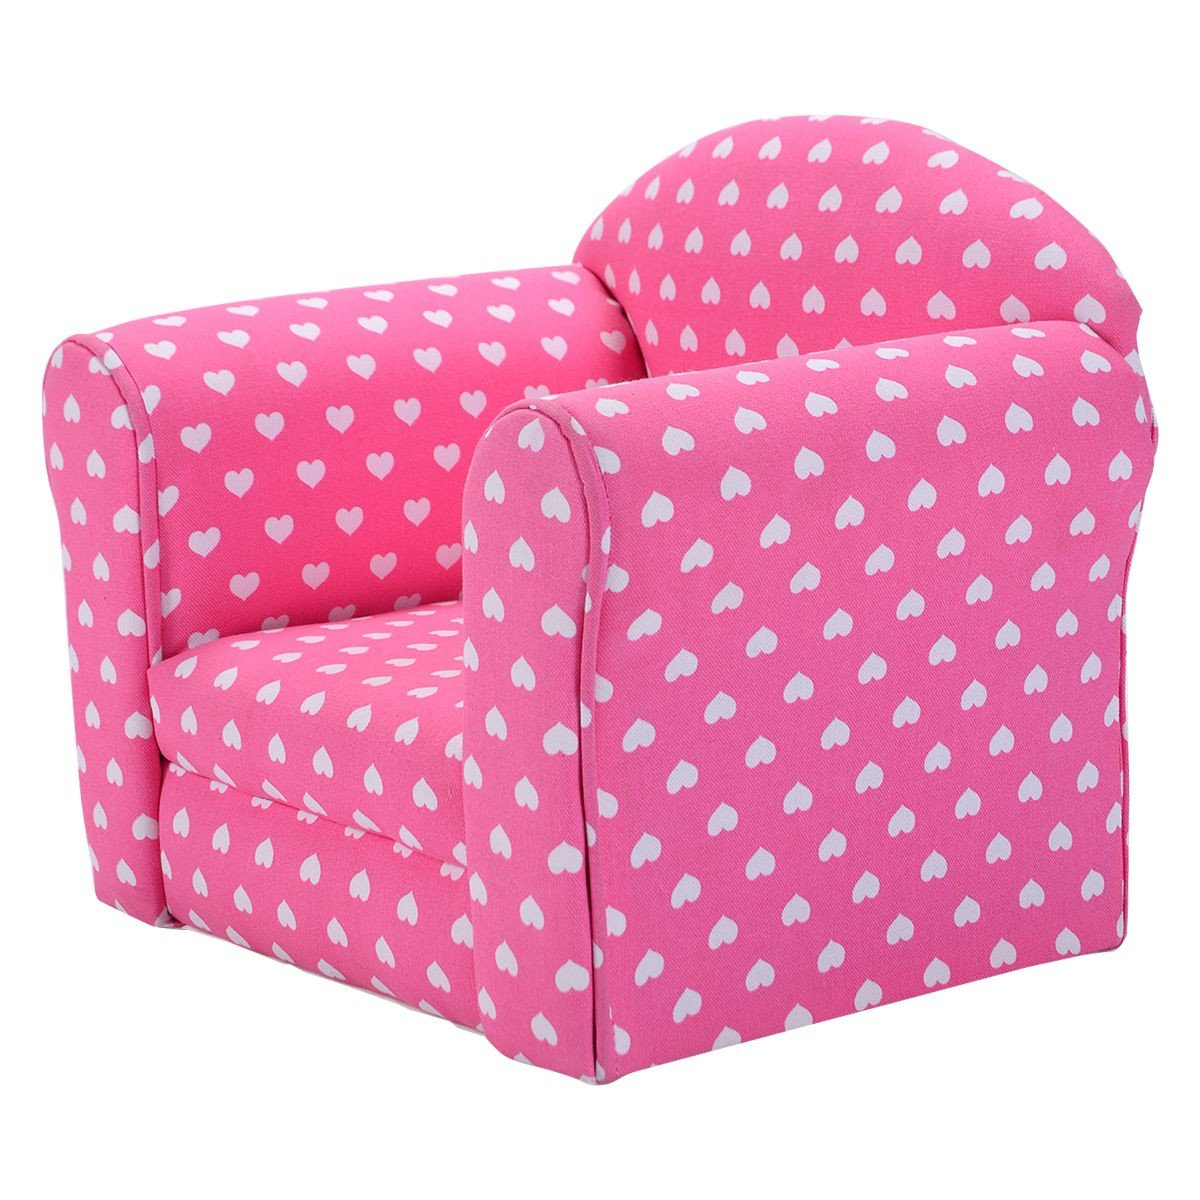 Heart-shaped Printed Armrest Children Couch 2 Colors - By Choice Products (Pink)